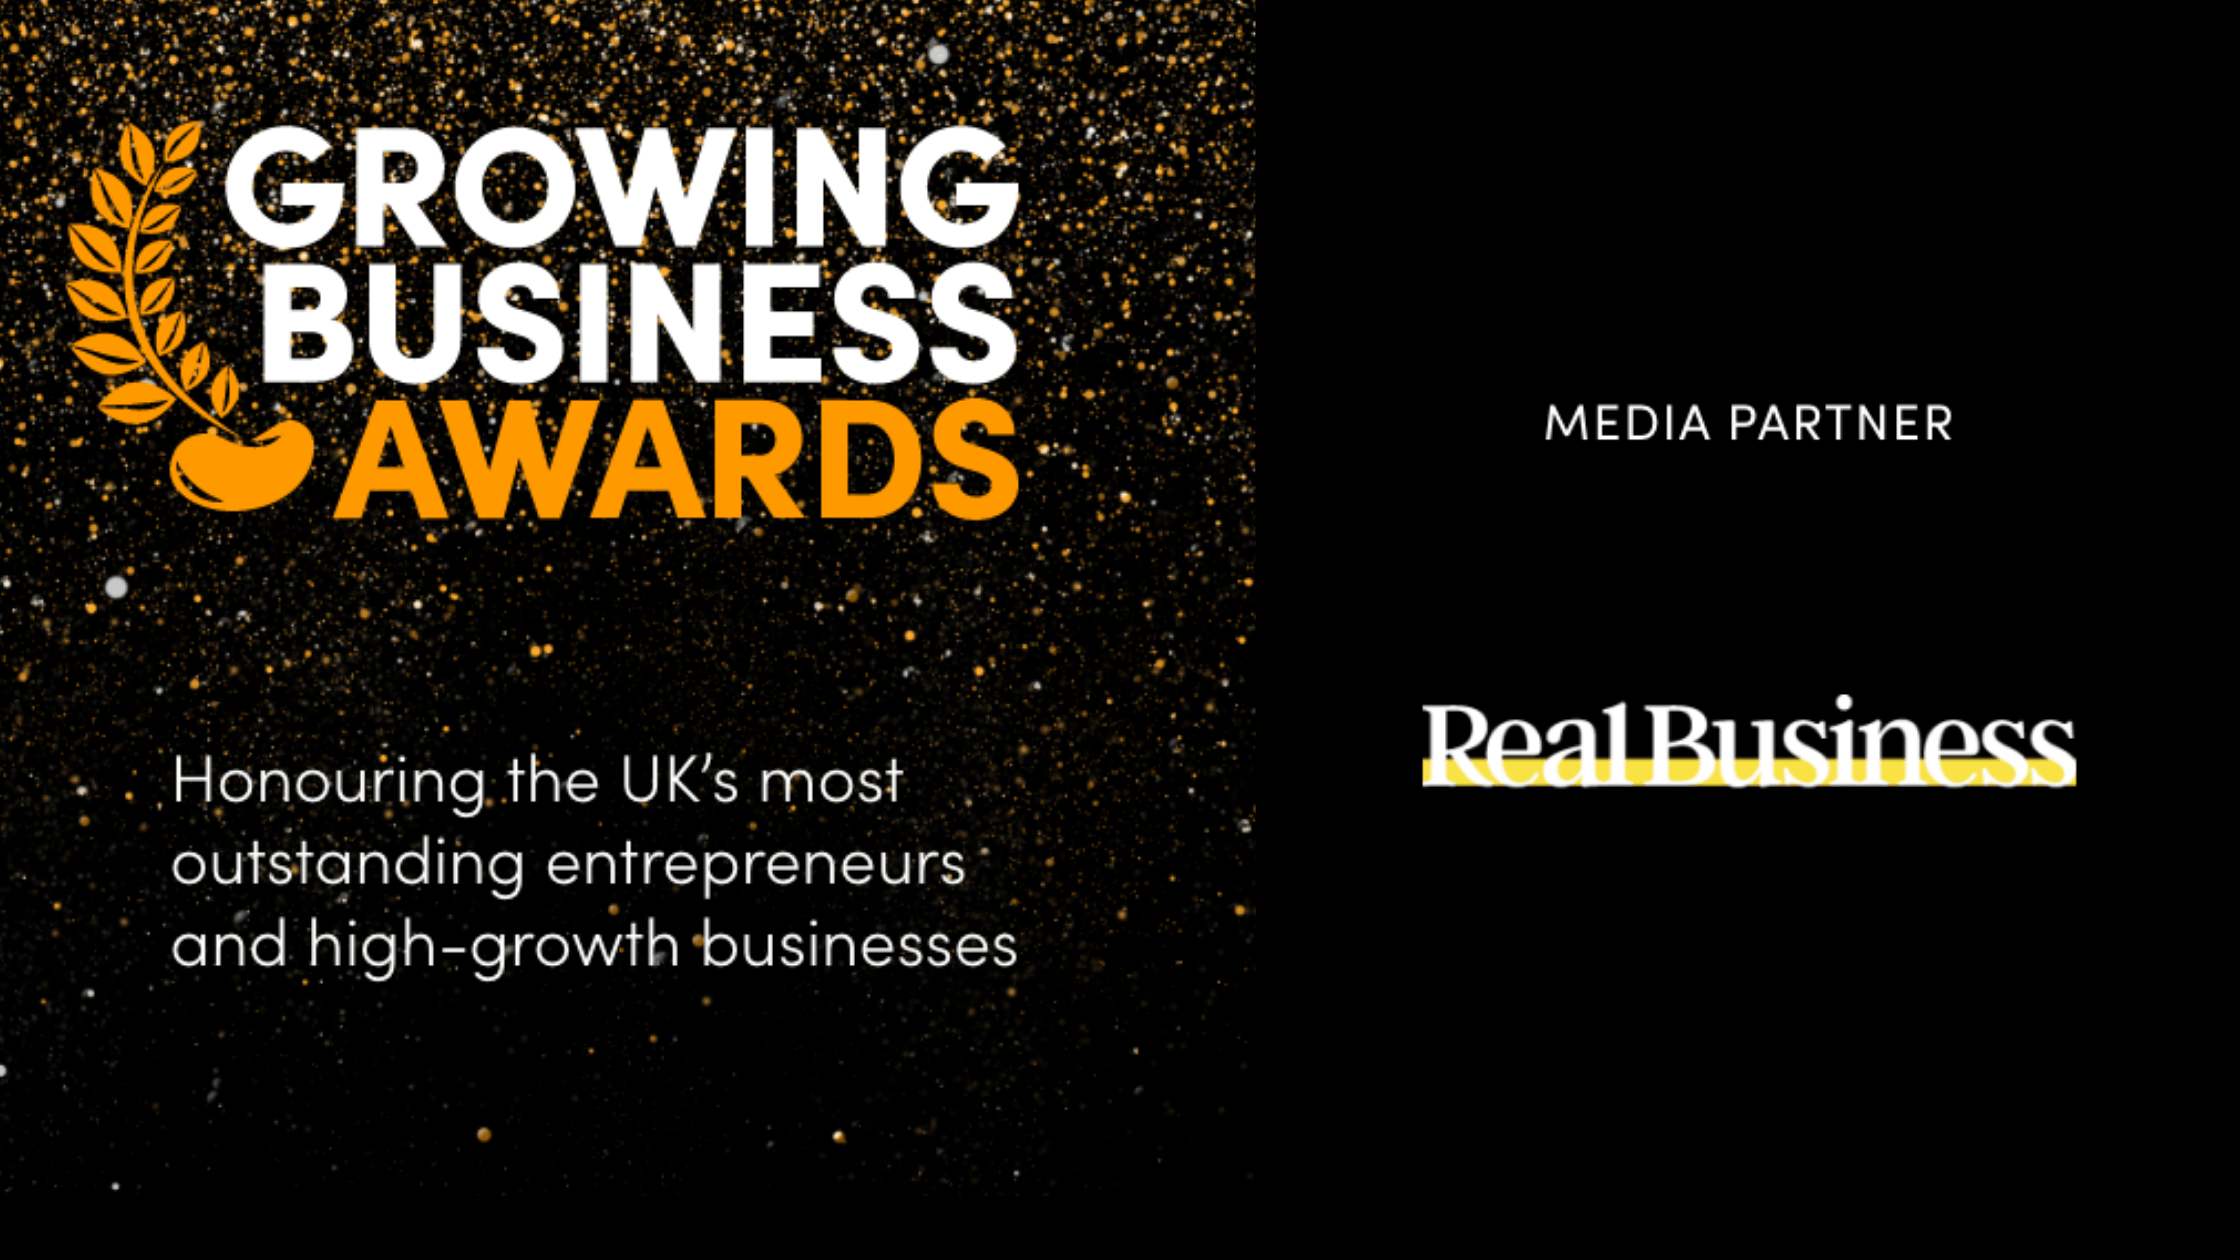 Celebrating Growth at the 23rd Annual Growing Business Awards